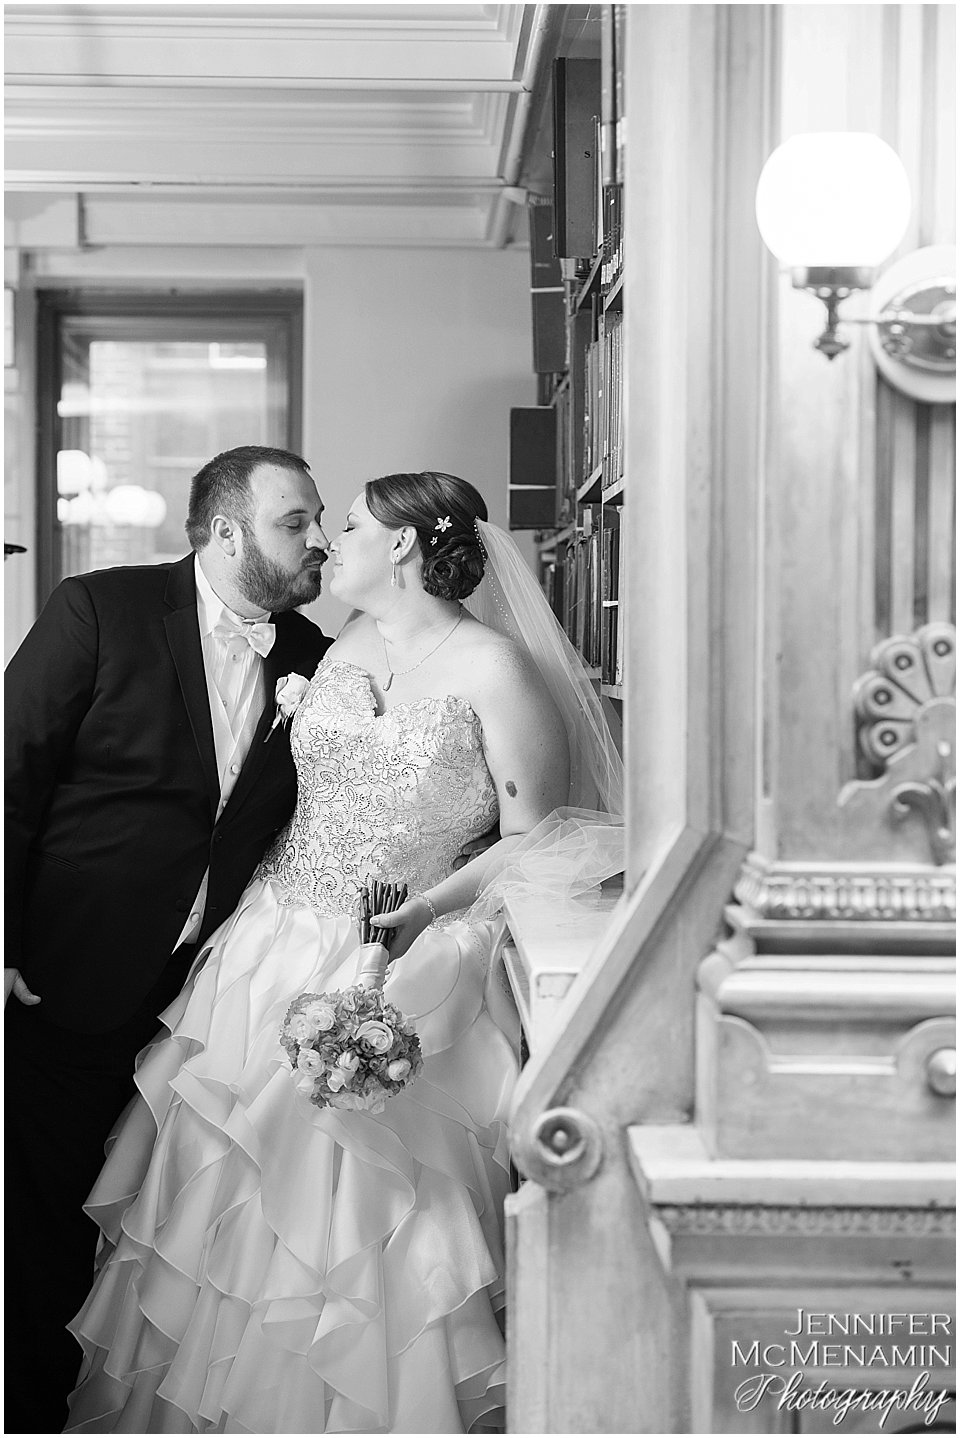 010-KinzlerShaull_01218bw_Jennifer-McMenamin-Photography-Peabody-Library-wedding